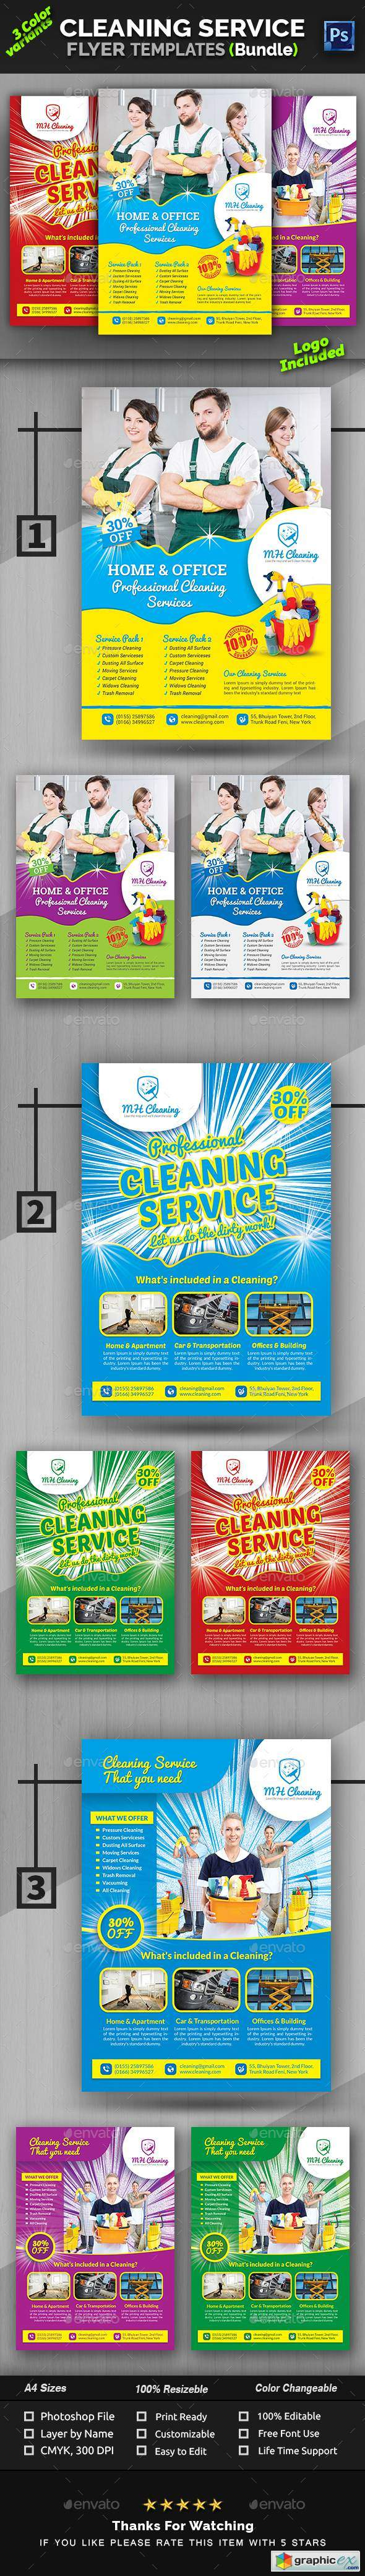 Cleaning Service Flyer Bundle 22542613